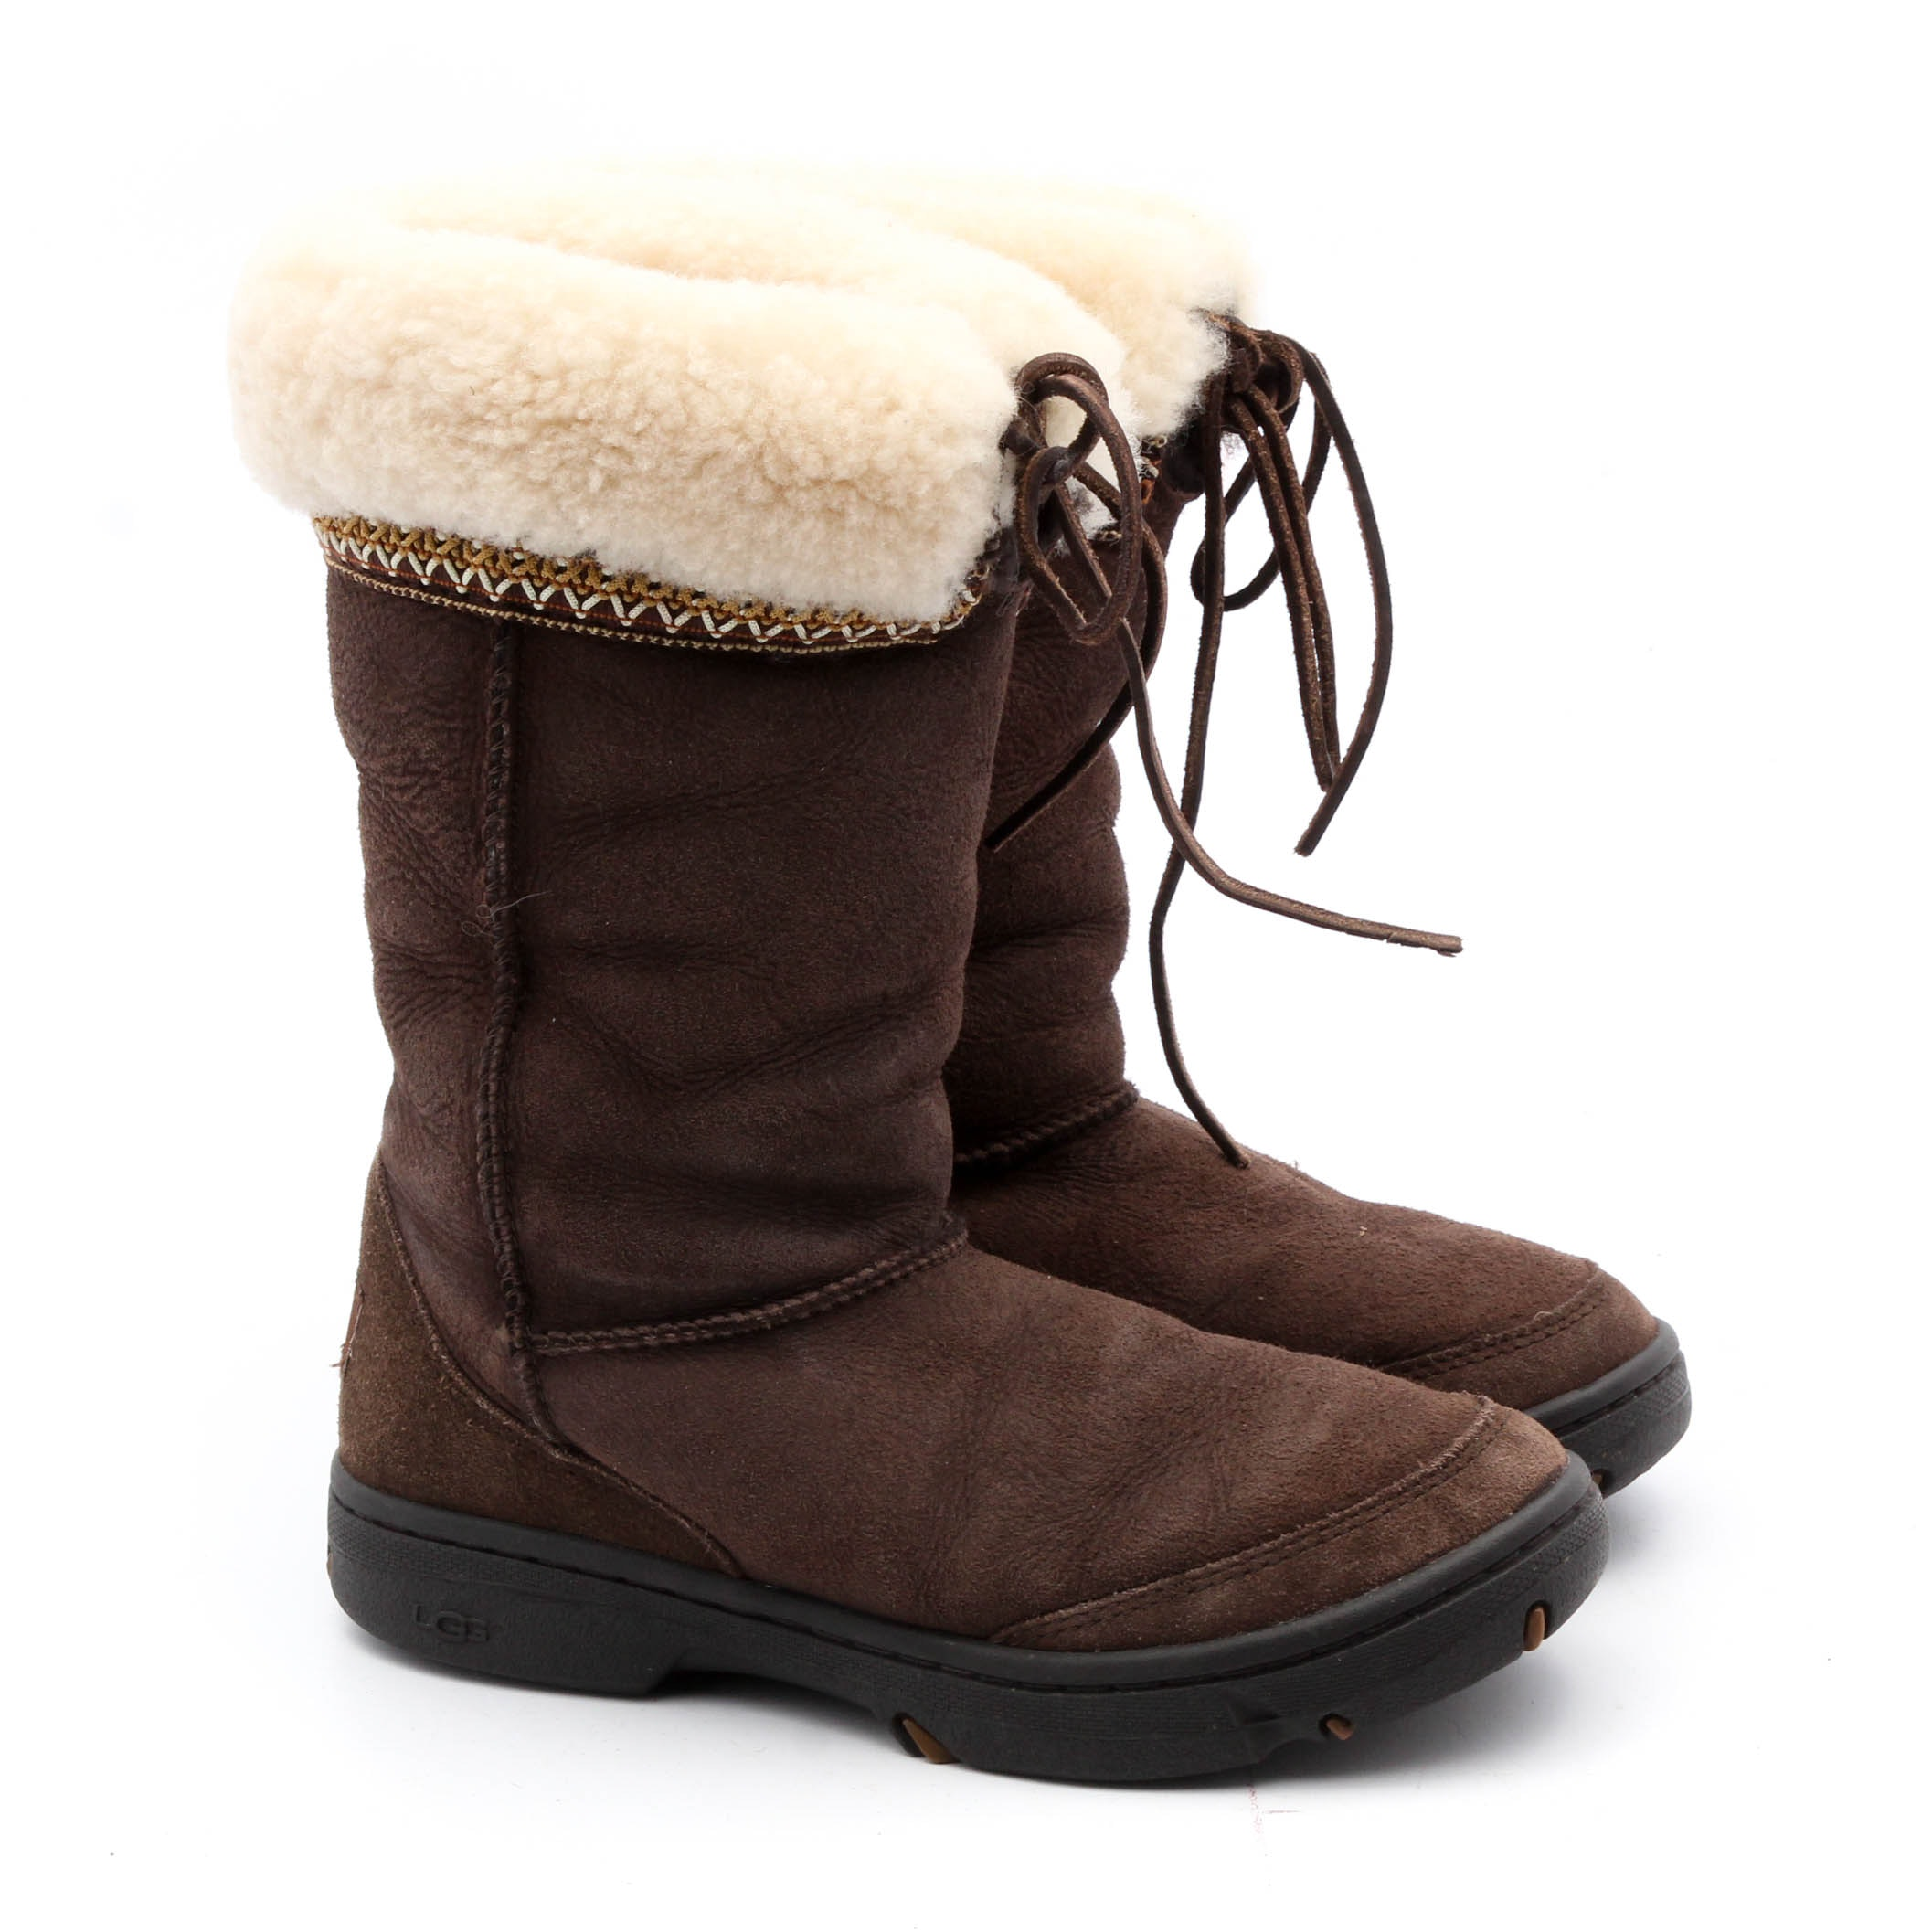 UGG Australia Brown Suede Shearling Mid-Calf Boots